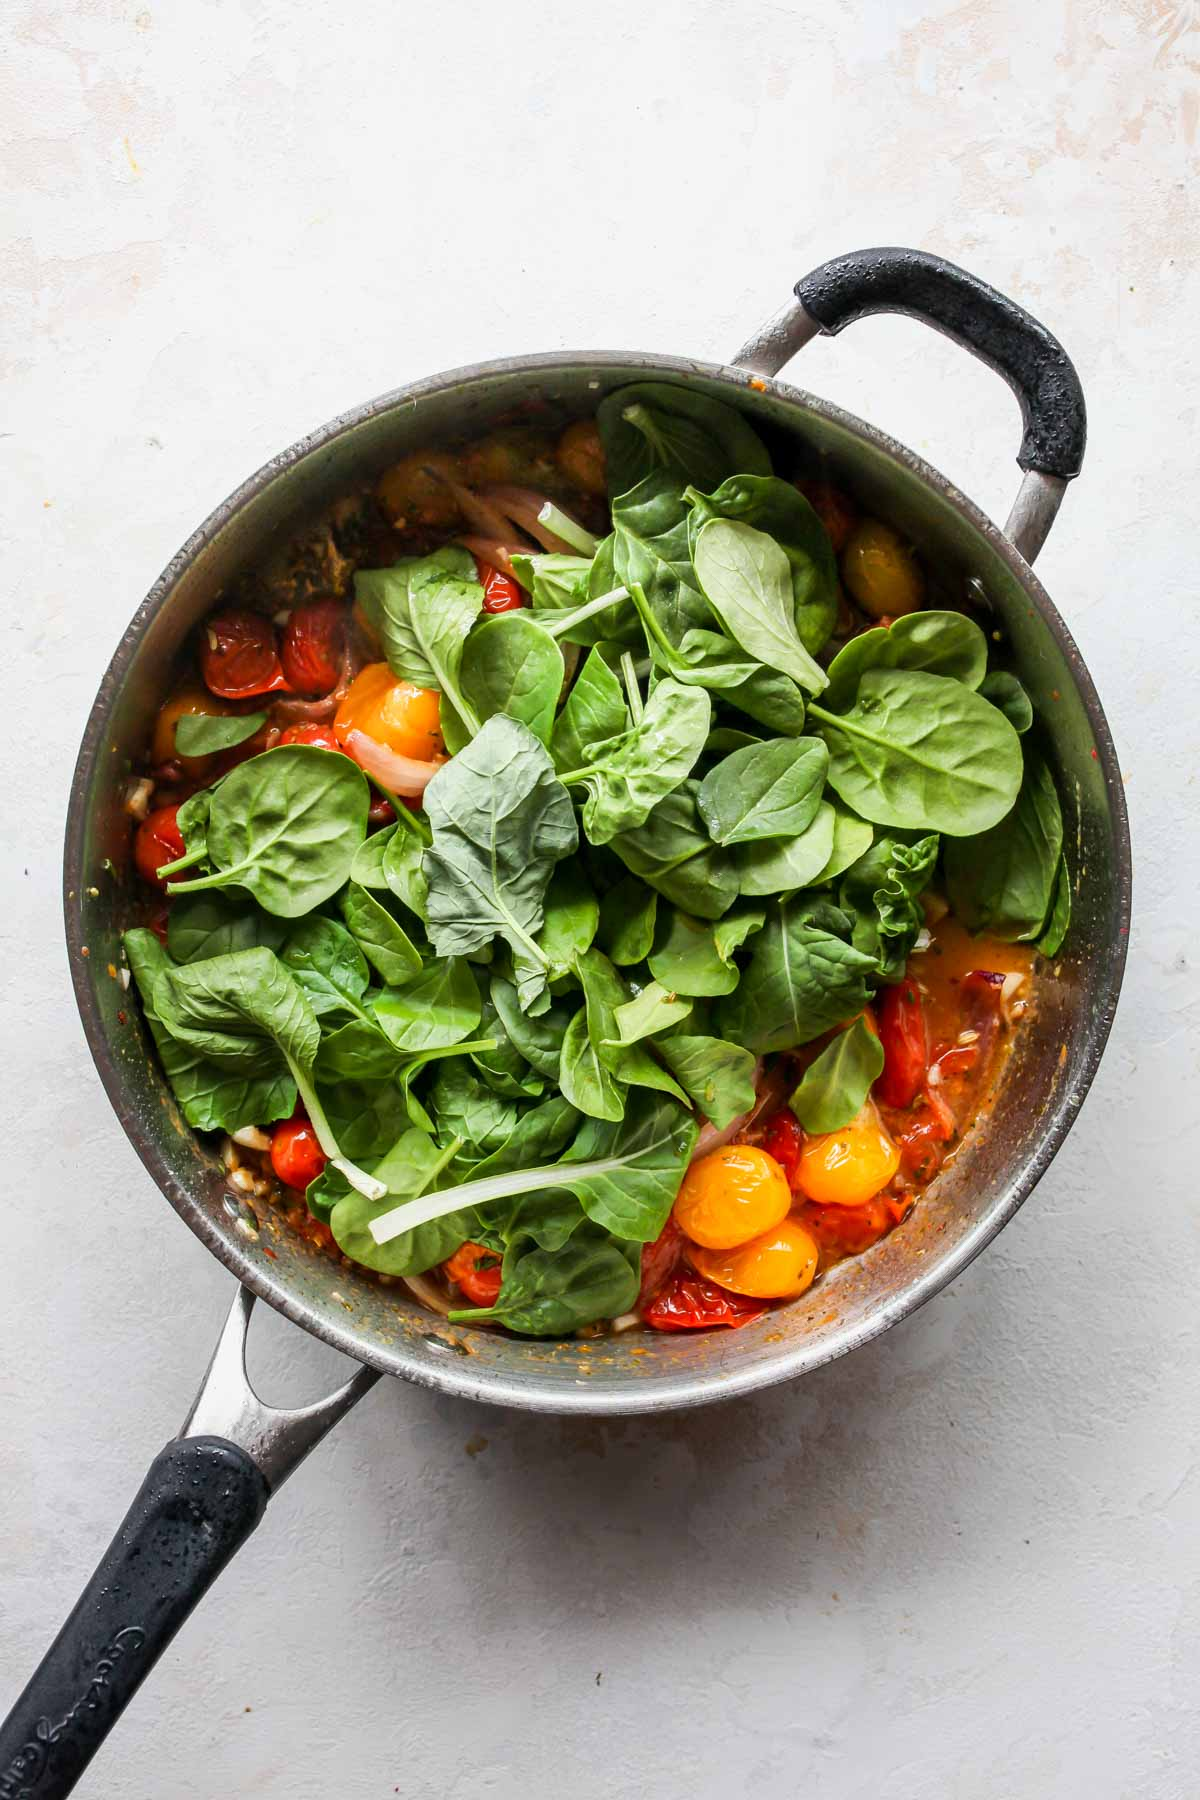 Spinach being stirred into a pan of sautéed vegetables